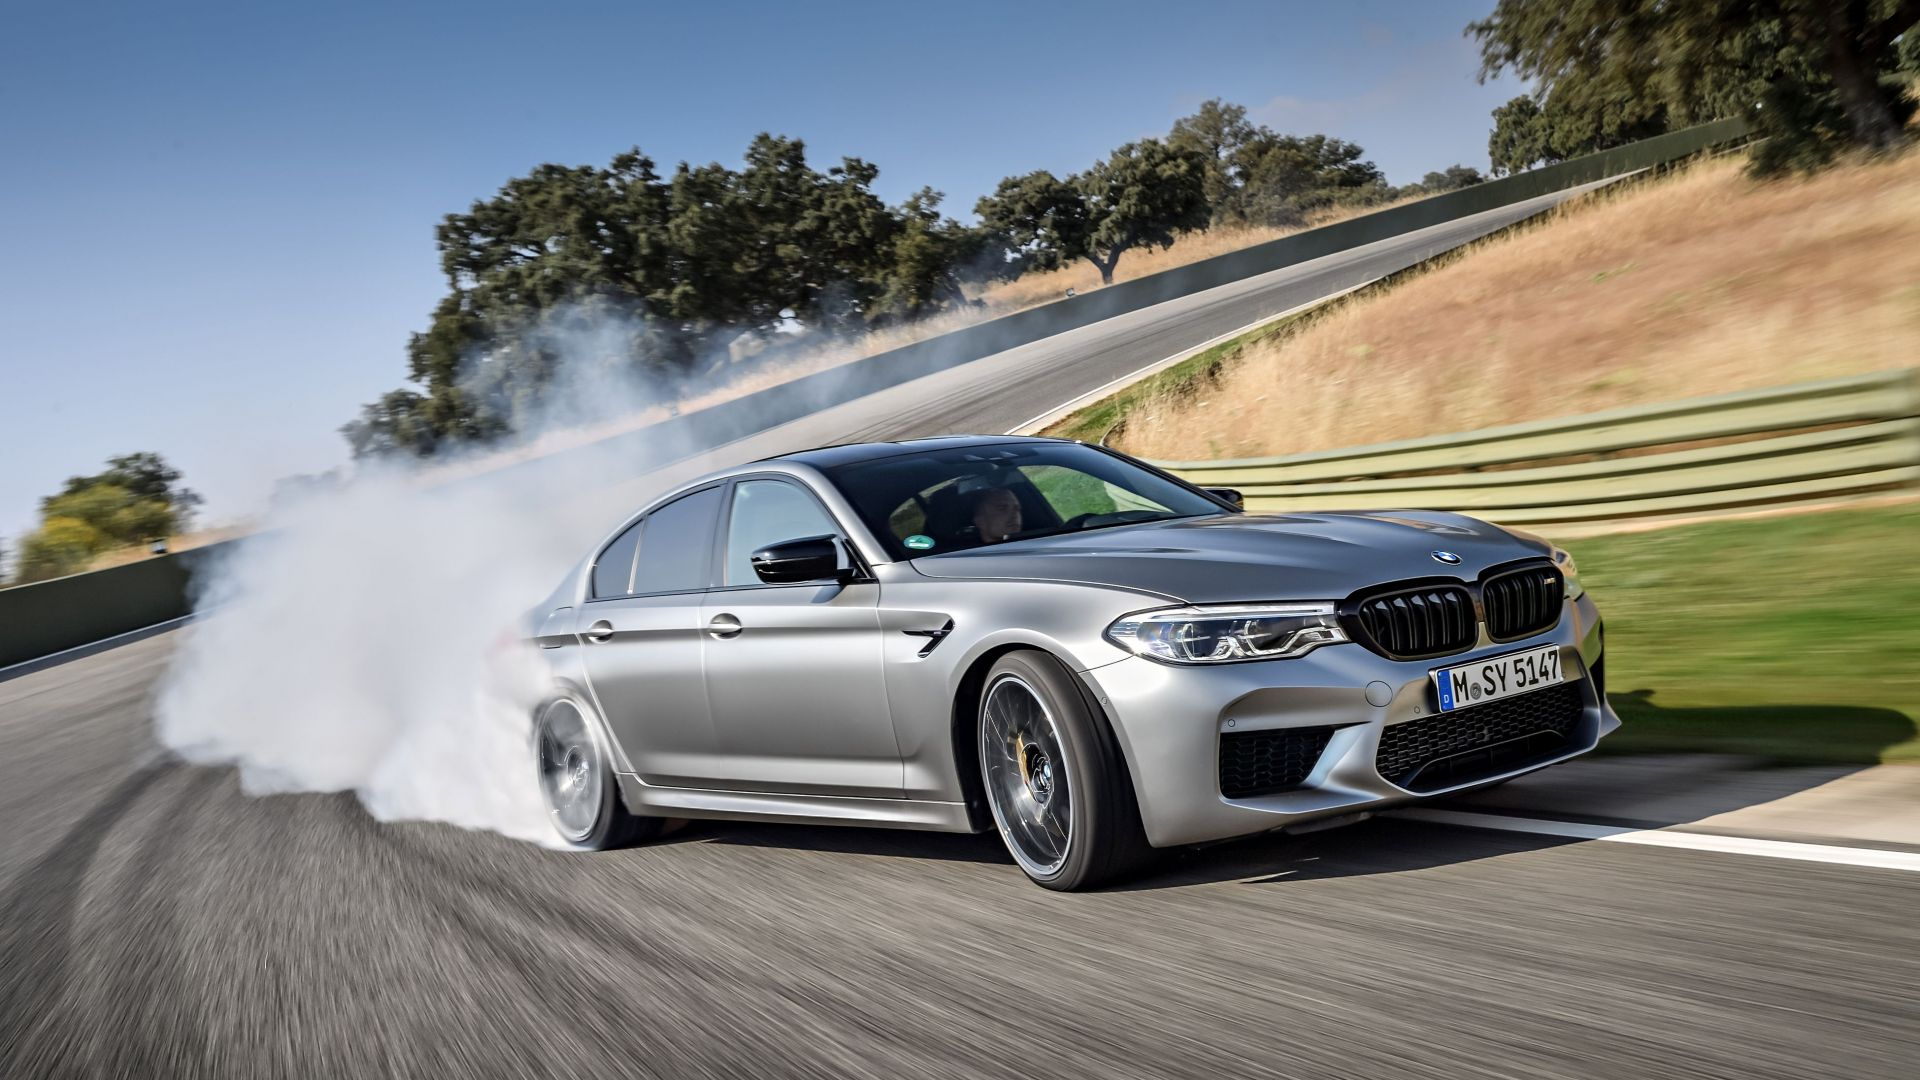 BMW M5 Competition, 2019 Cars, limited edition, 4K (horizontal)